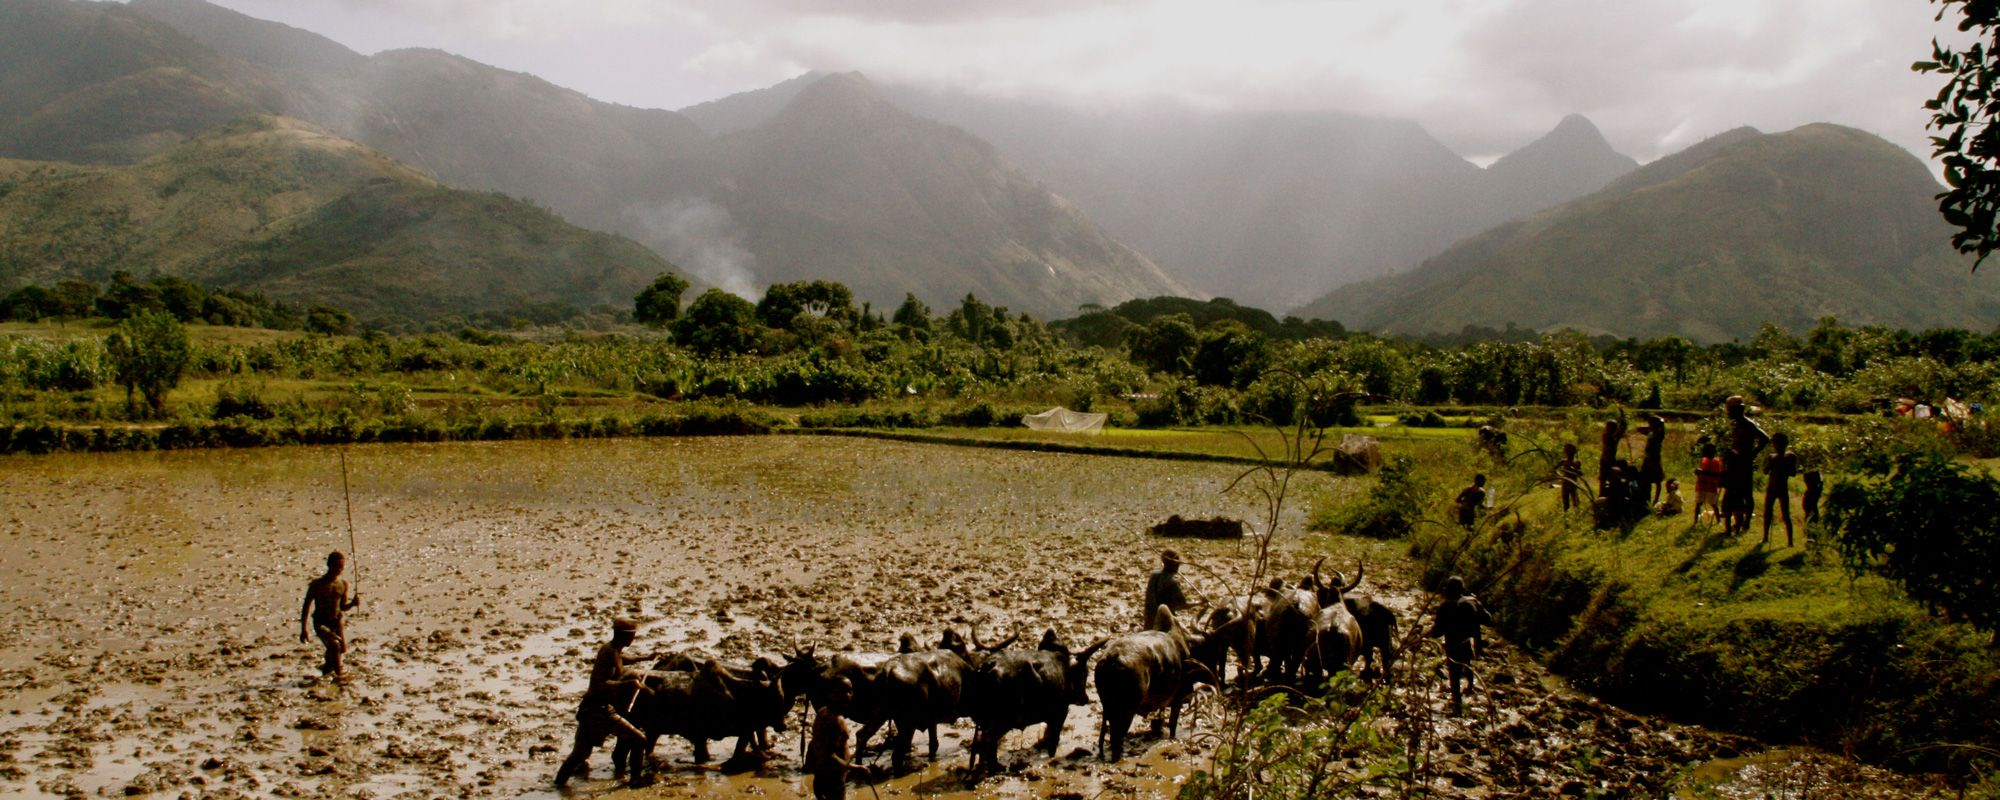 Plowing fields with zebu to prepare them for rice planting